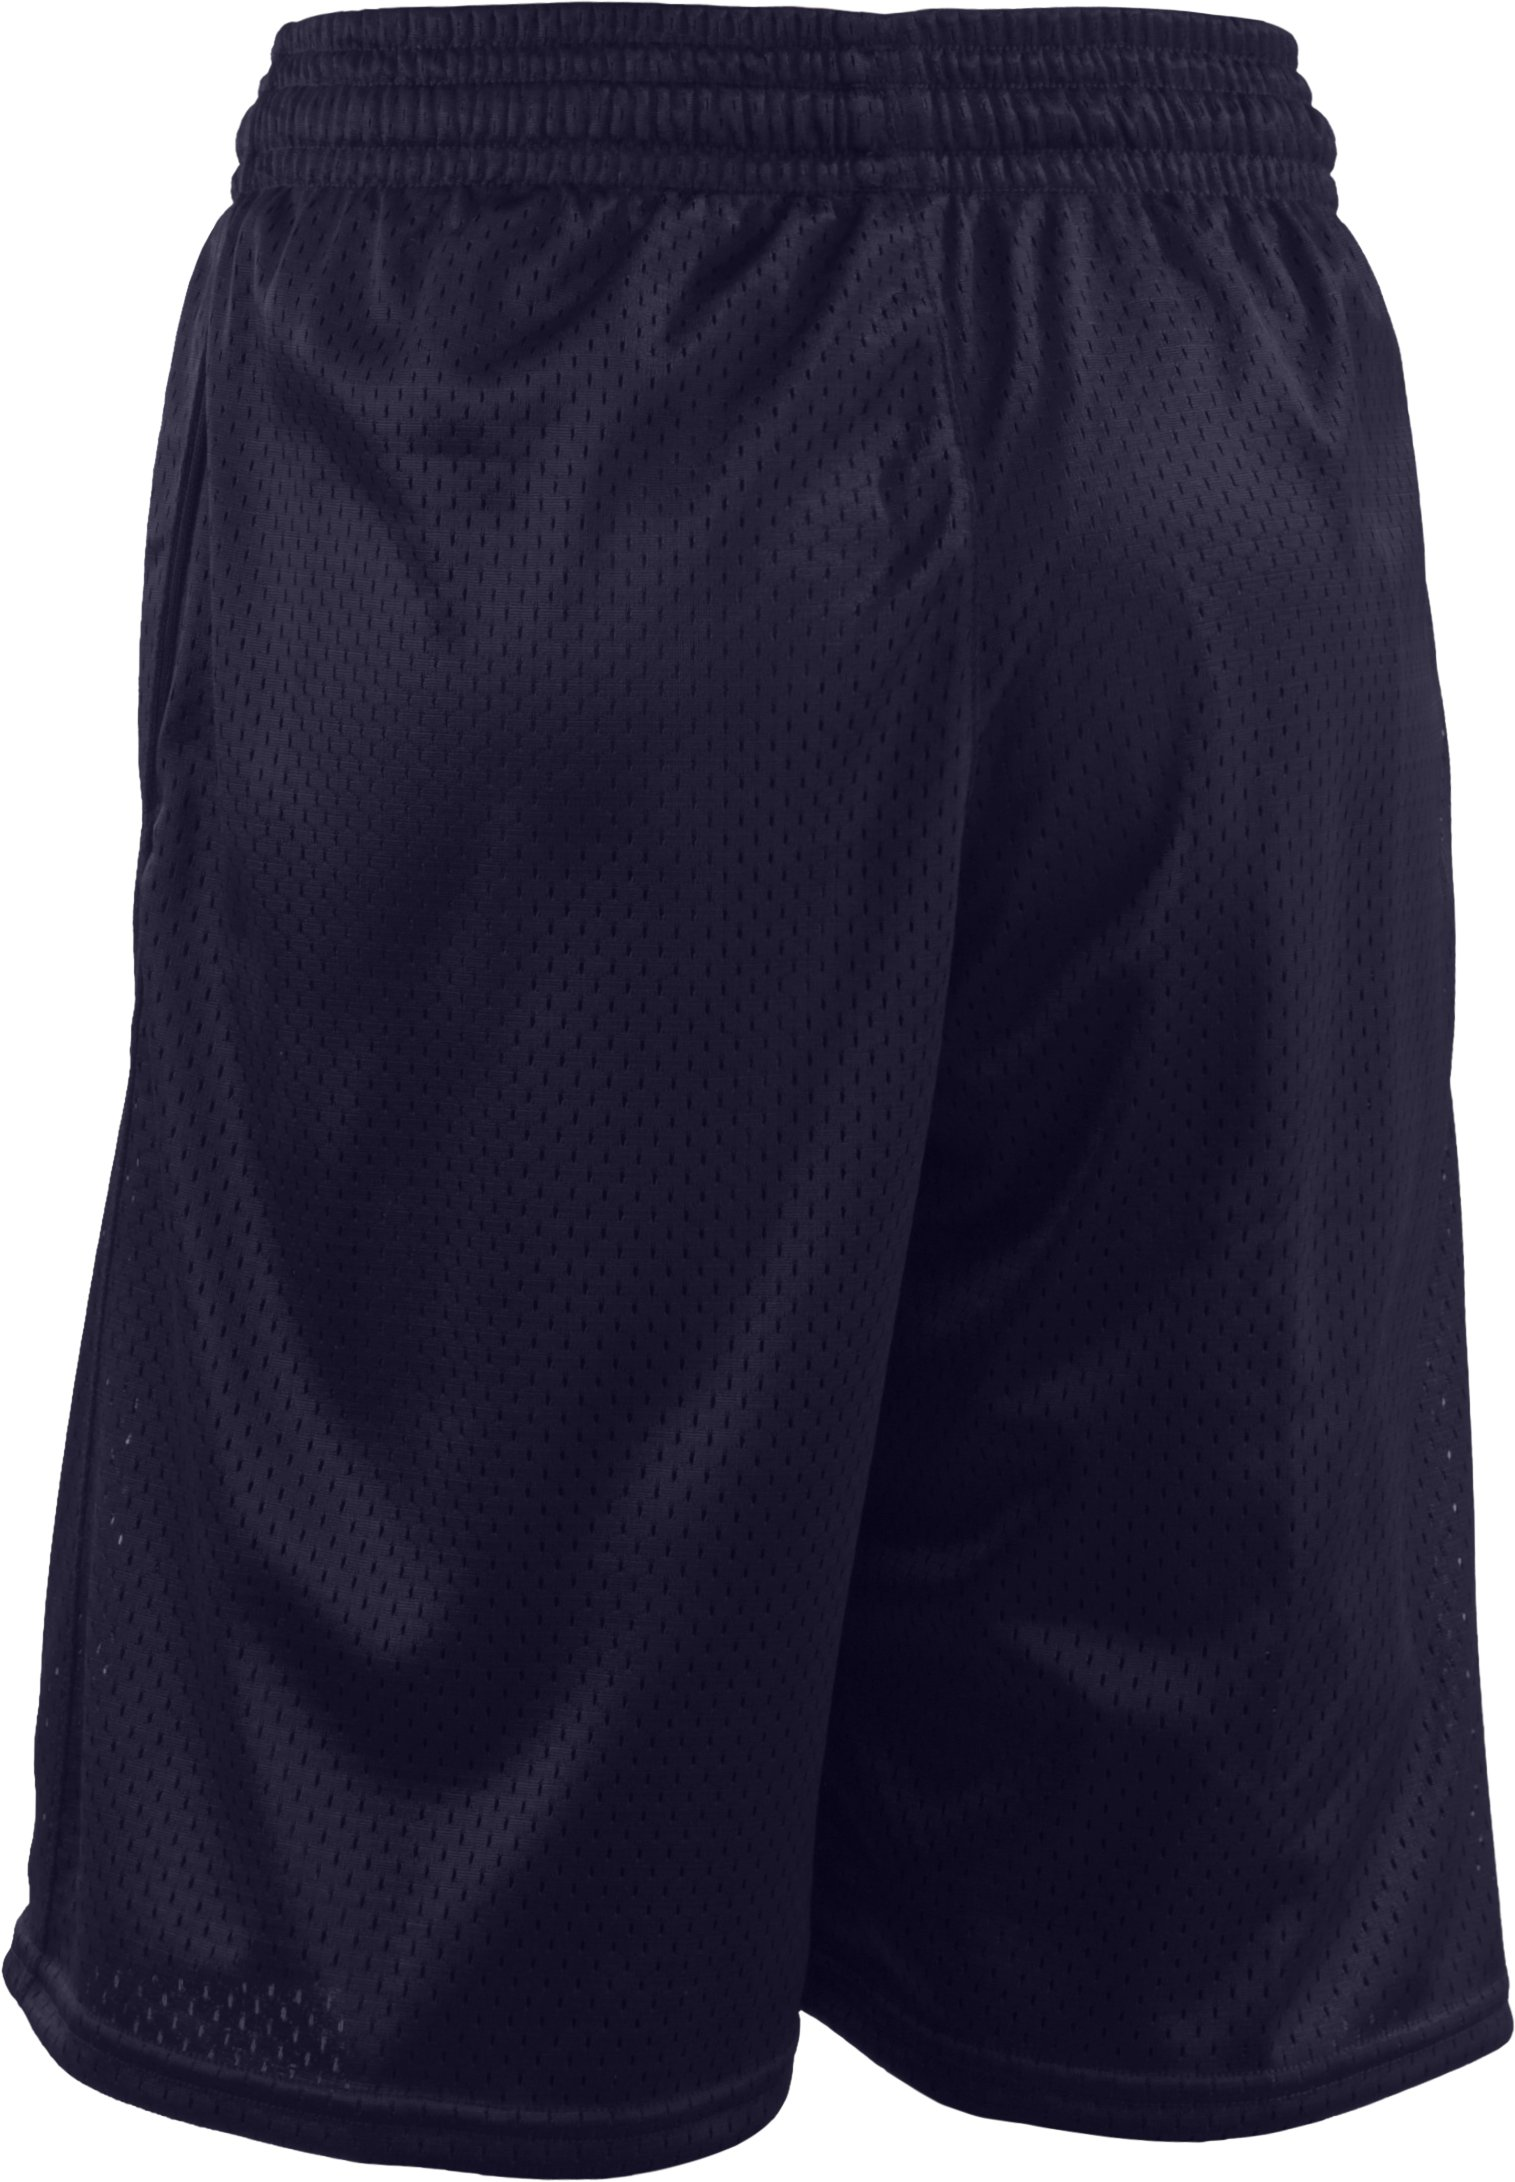 Boys' UA Dominate Mesh Shorts, Midnight Navy